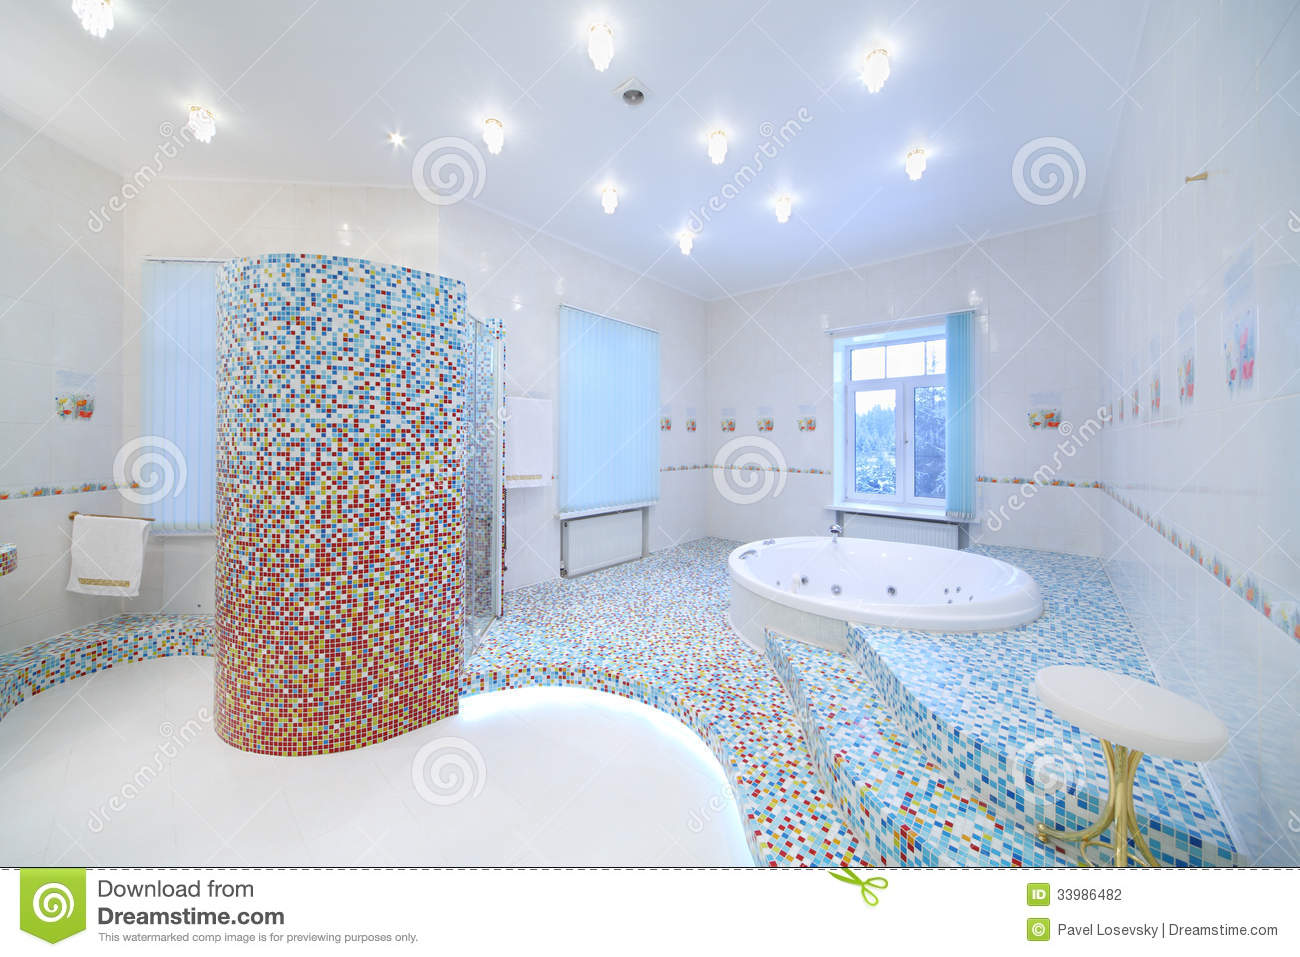 Light and clean bathroom with jacuzzi and shower cabin for Salle de bain avec jacuzzi